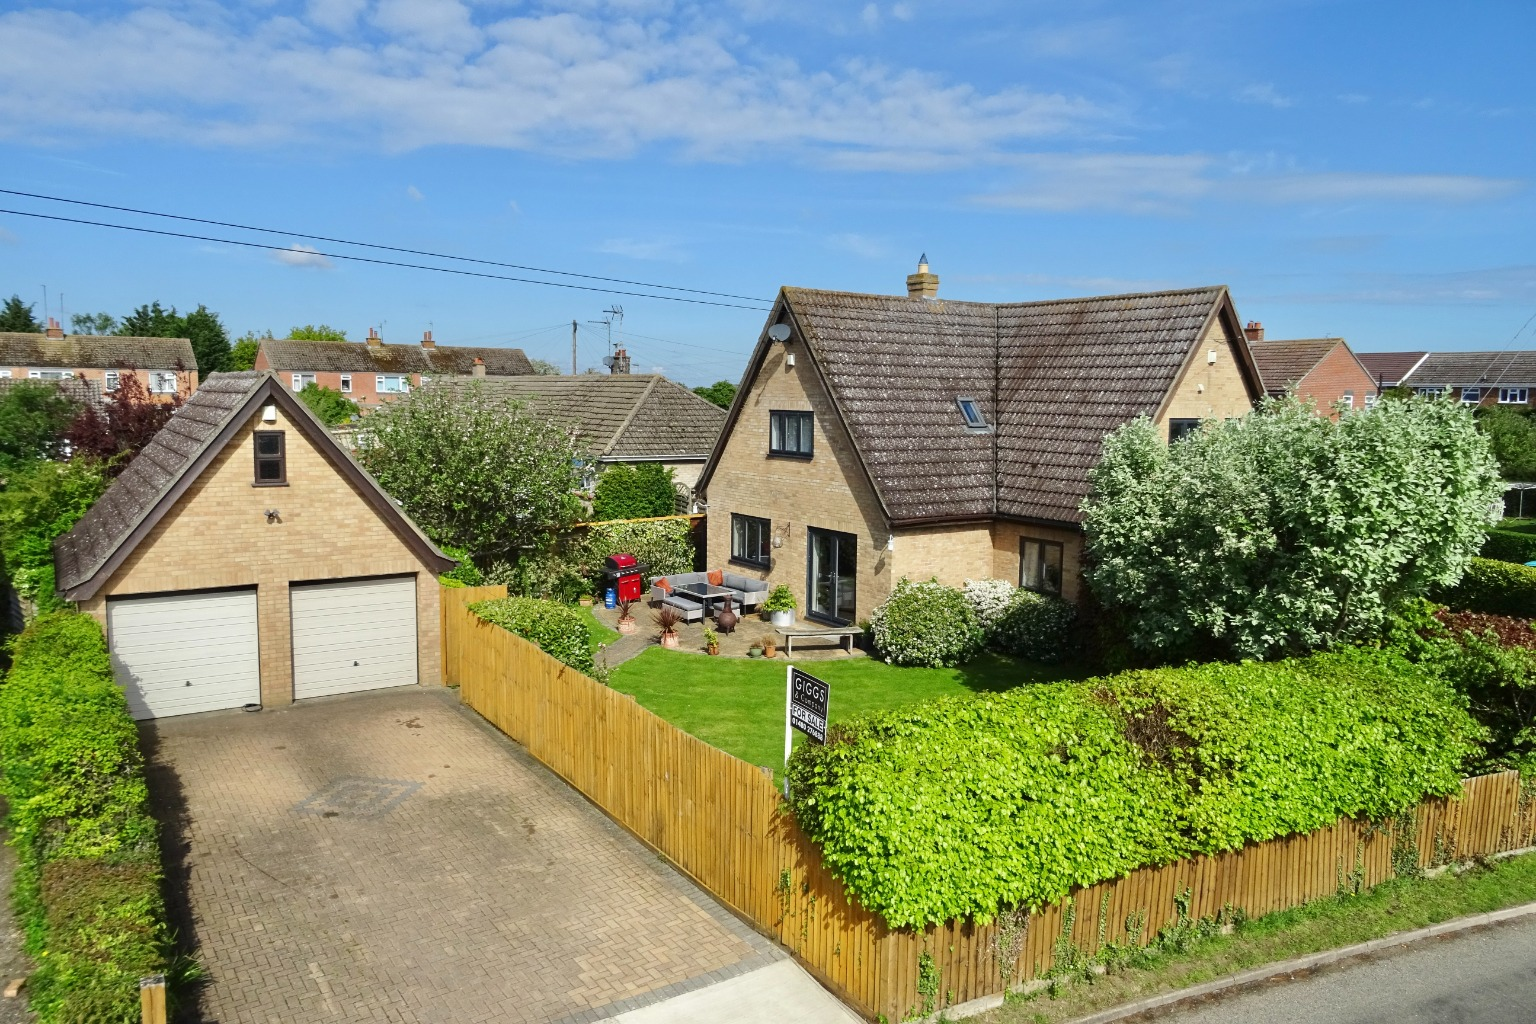 4 bed detached house for sale in The Gables, The Green, Huntingdon - Property Image 1